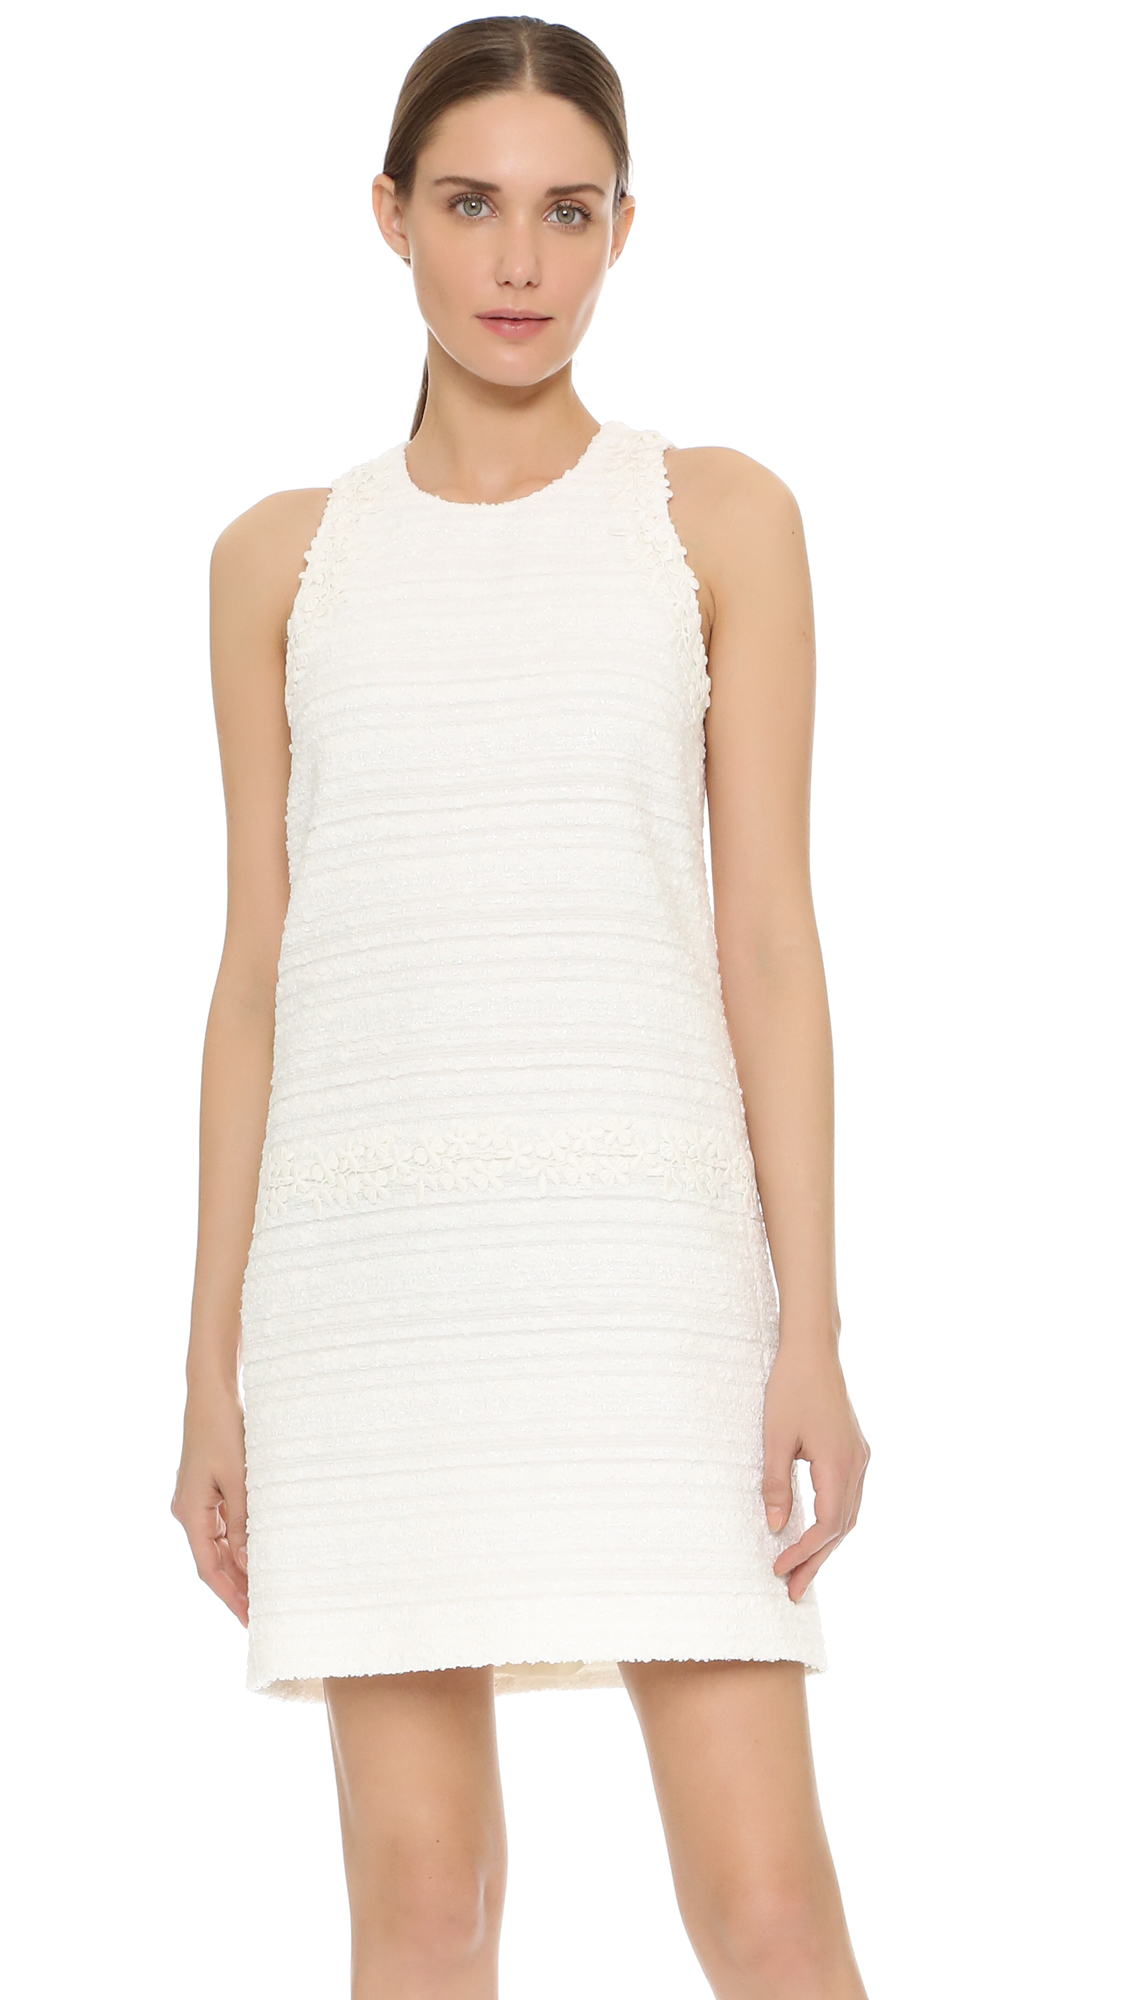 Find great deals on eBay for white sleeveless dress. Shop with confidence. Skip to main content. eBay: Womens White Sleeveless Lace Bodycon Slim Midi Dress Cocktail Party Pencil Dress. US Stock!!! Sexy Party Cocktail Pencil Mini Dress S-XL. Brand New · Unbranded. $ Buy It Now.